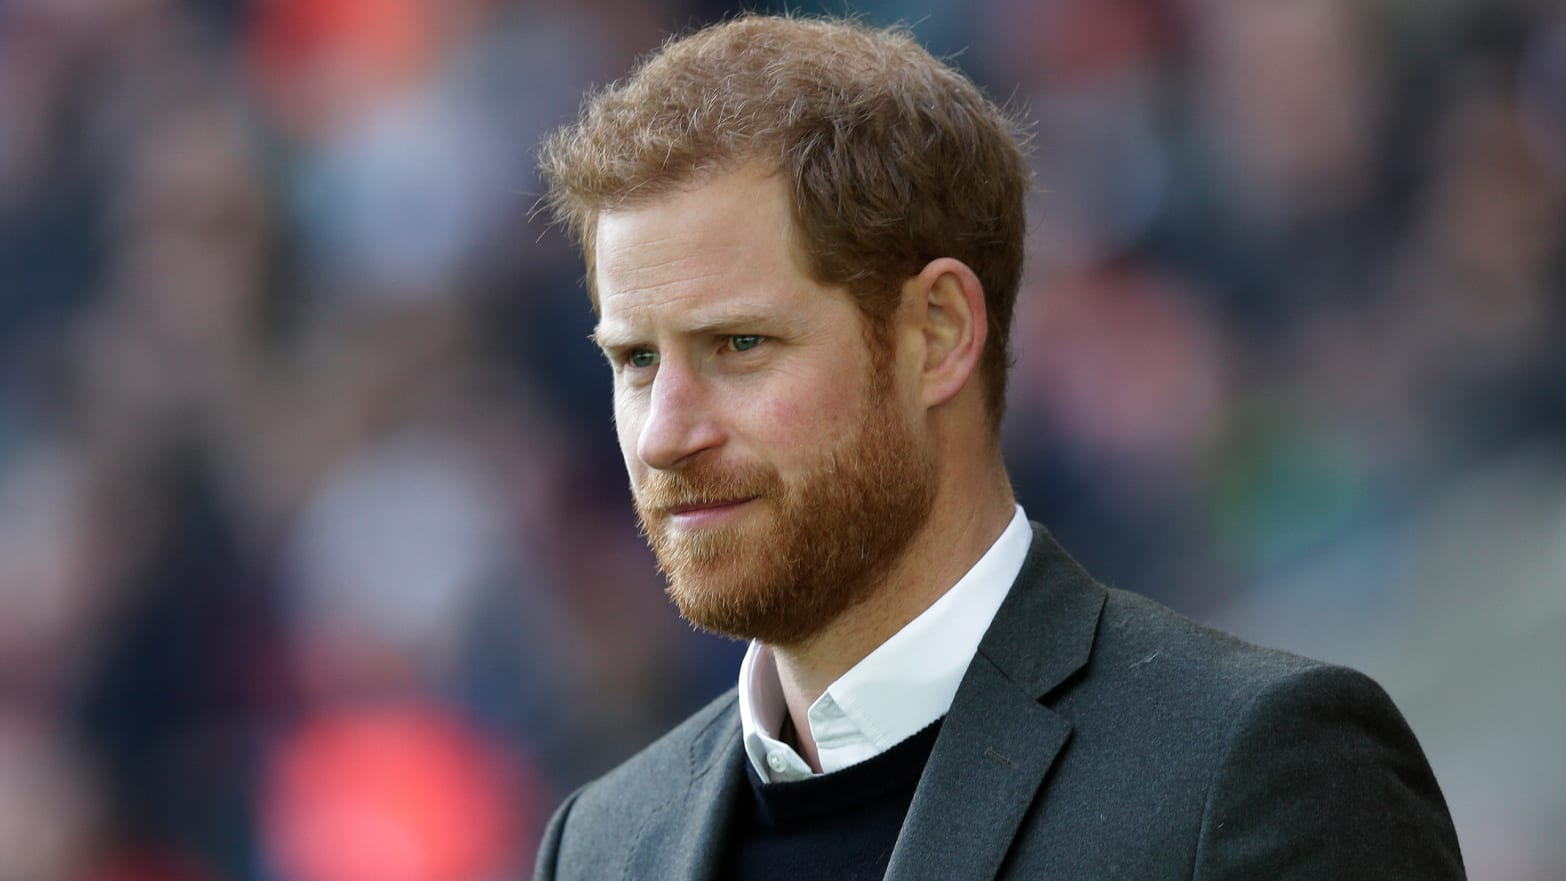 the rumors about prince harry s paternity that never die the rumors about prince harry s